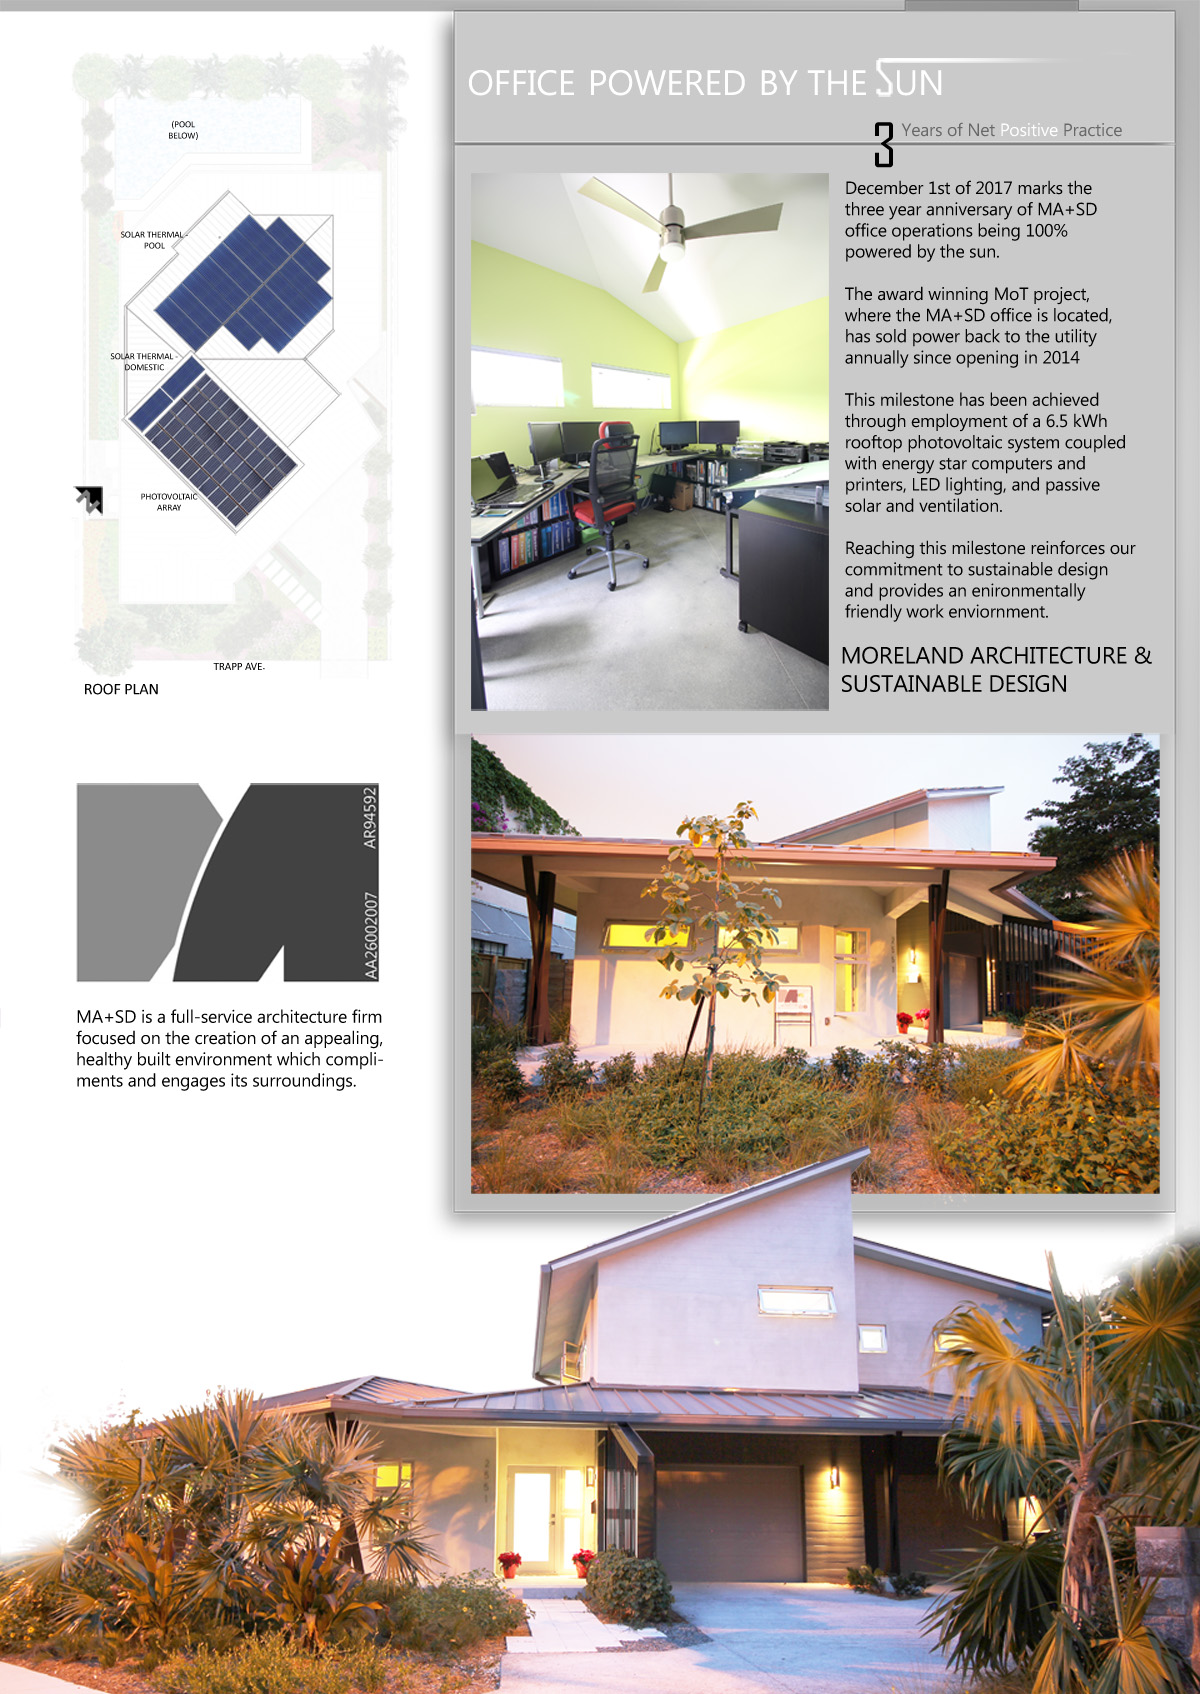 S D Home Design Llc Part - 35: MA+SD Is Celebrating Our Third Anniversary Of Office Operations Being 100%  Powered By The Sun. Click On The Image To The Right To Find Out More.